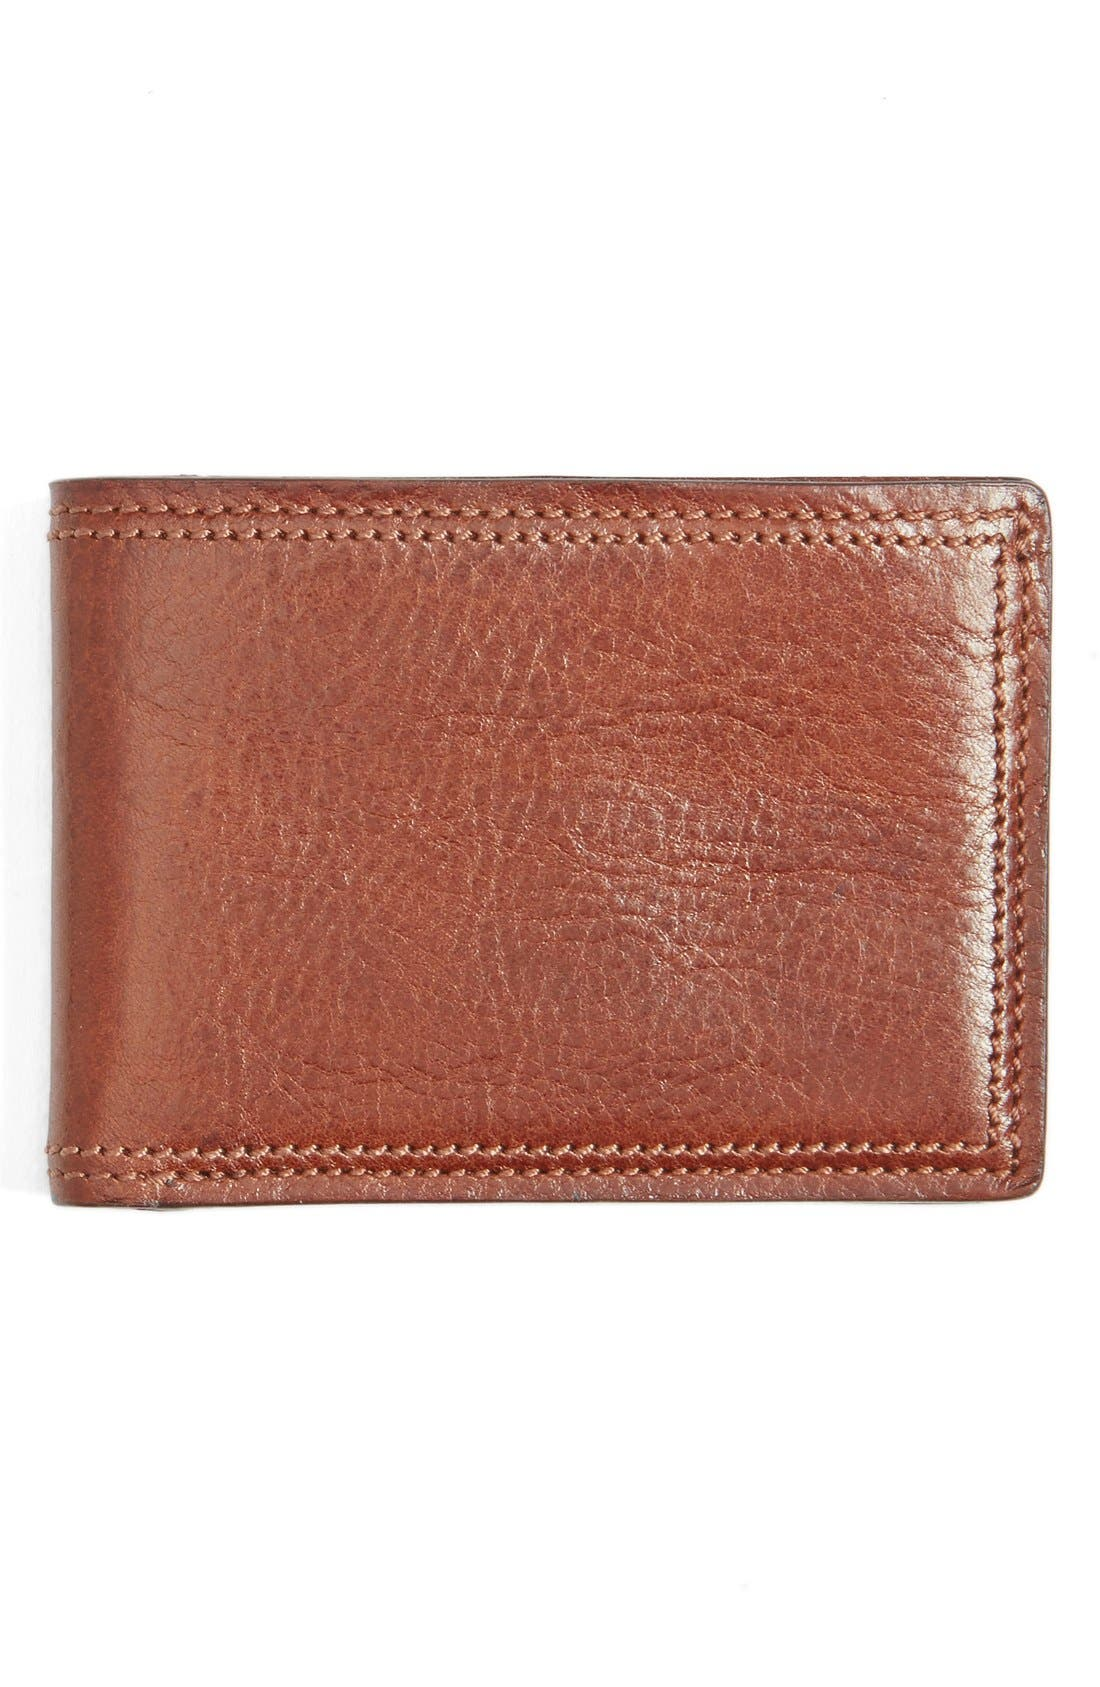 Leather Bifold Wallet,                             Main thumbnail 1, color,                             233